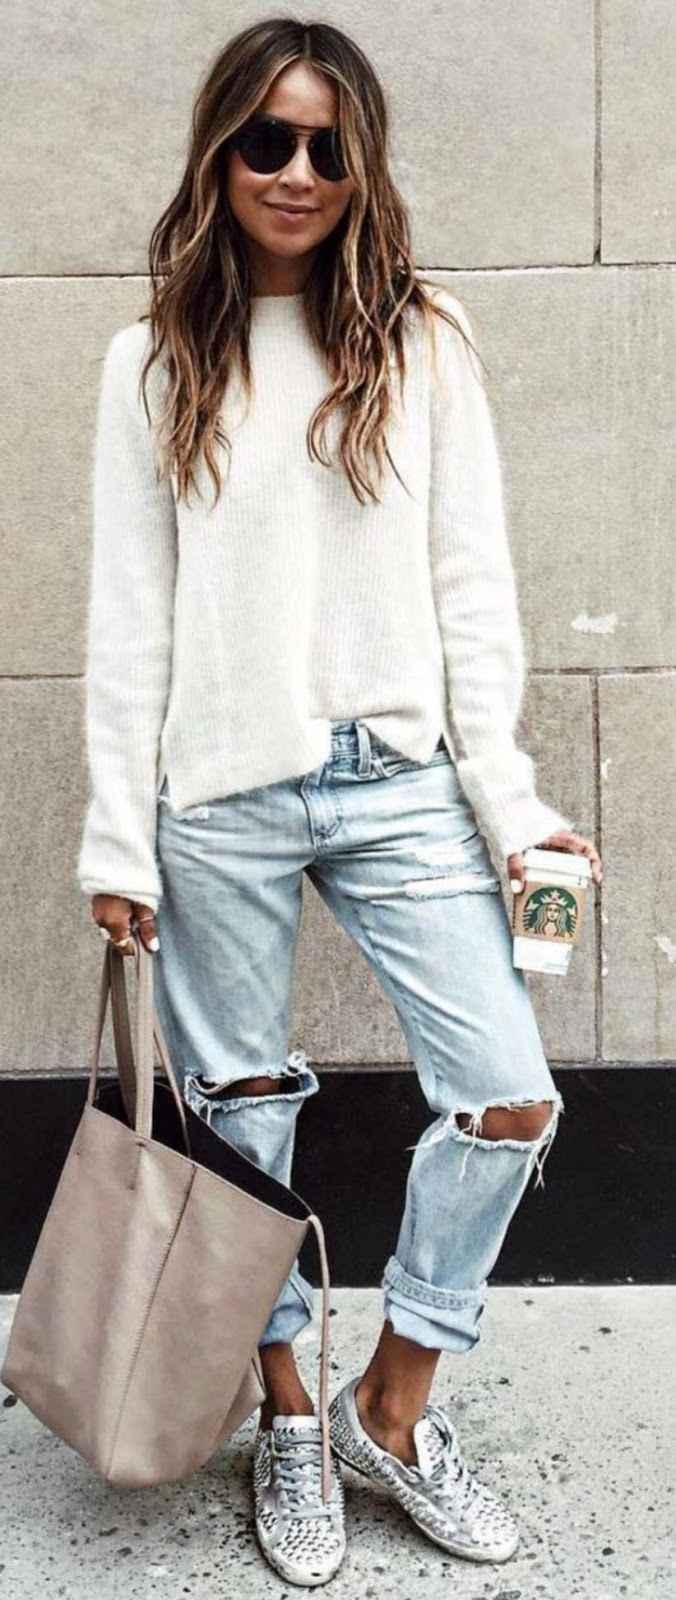 comfy look | white sweater + ripped jeans + bag + sneakers